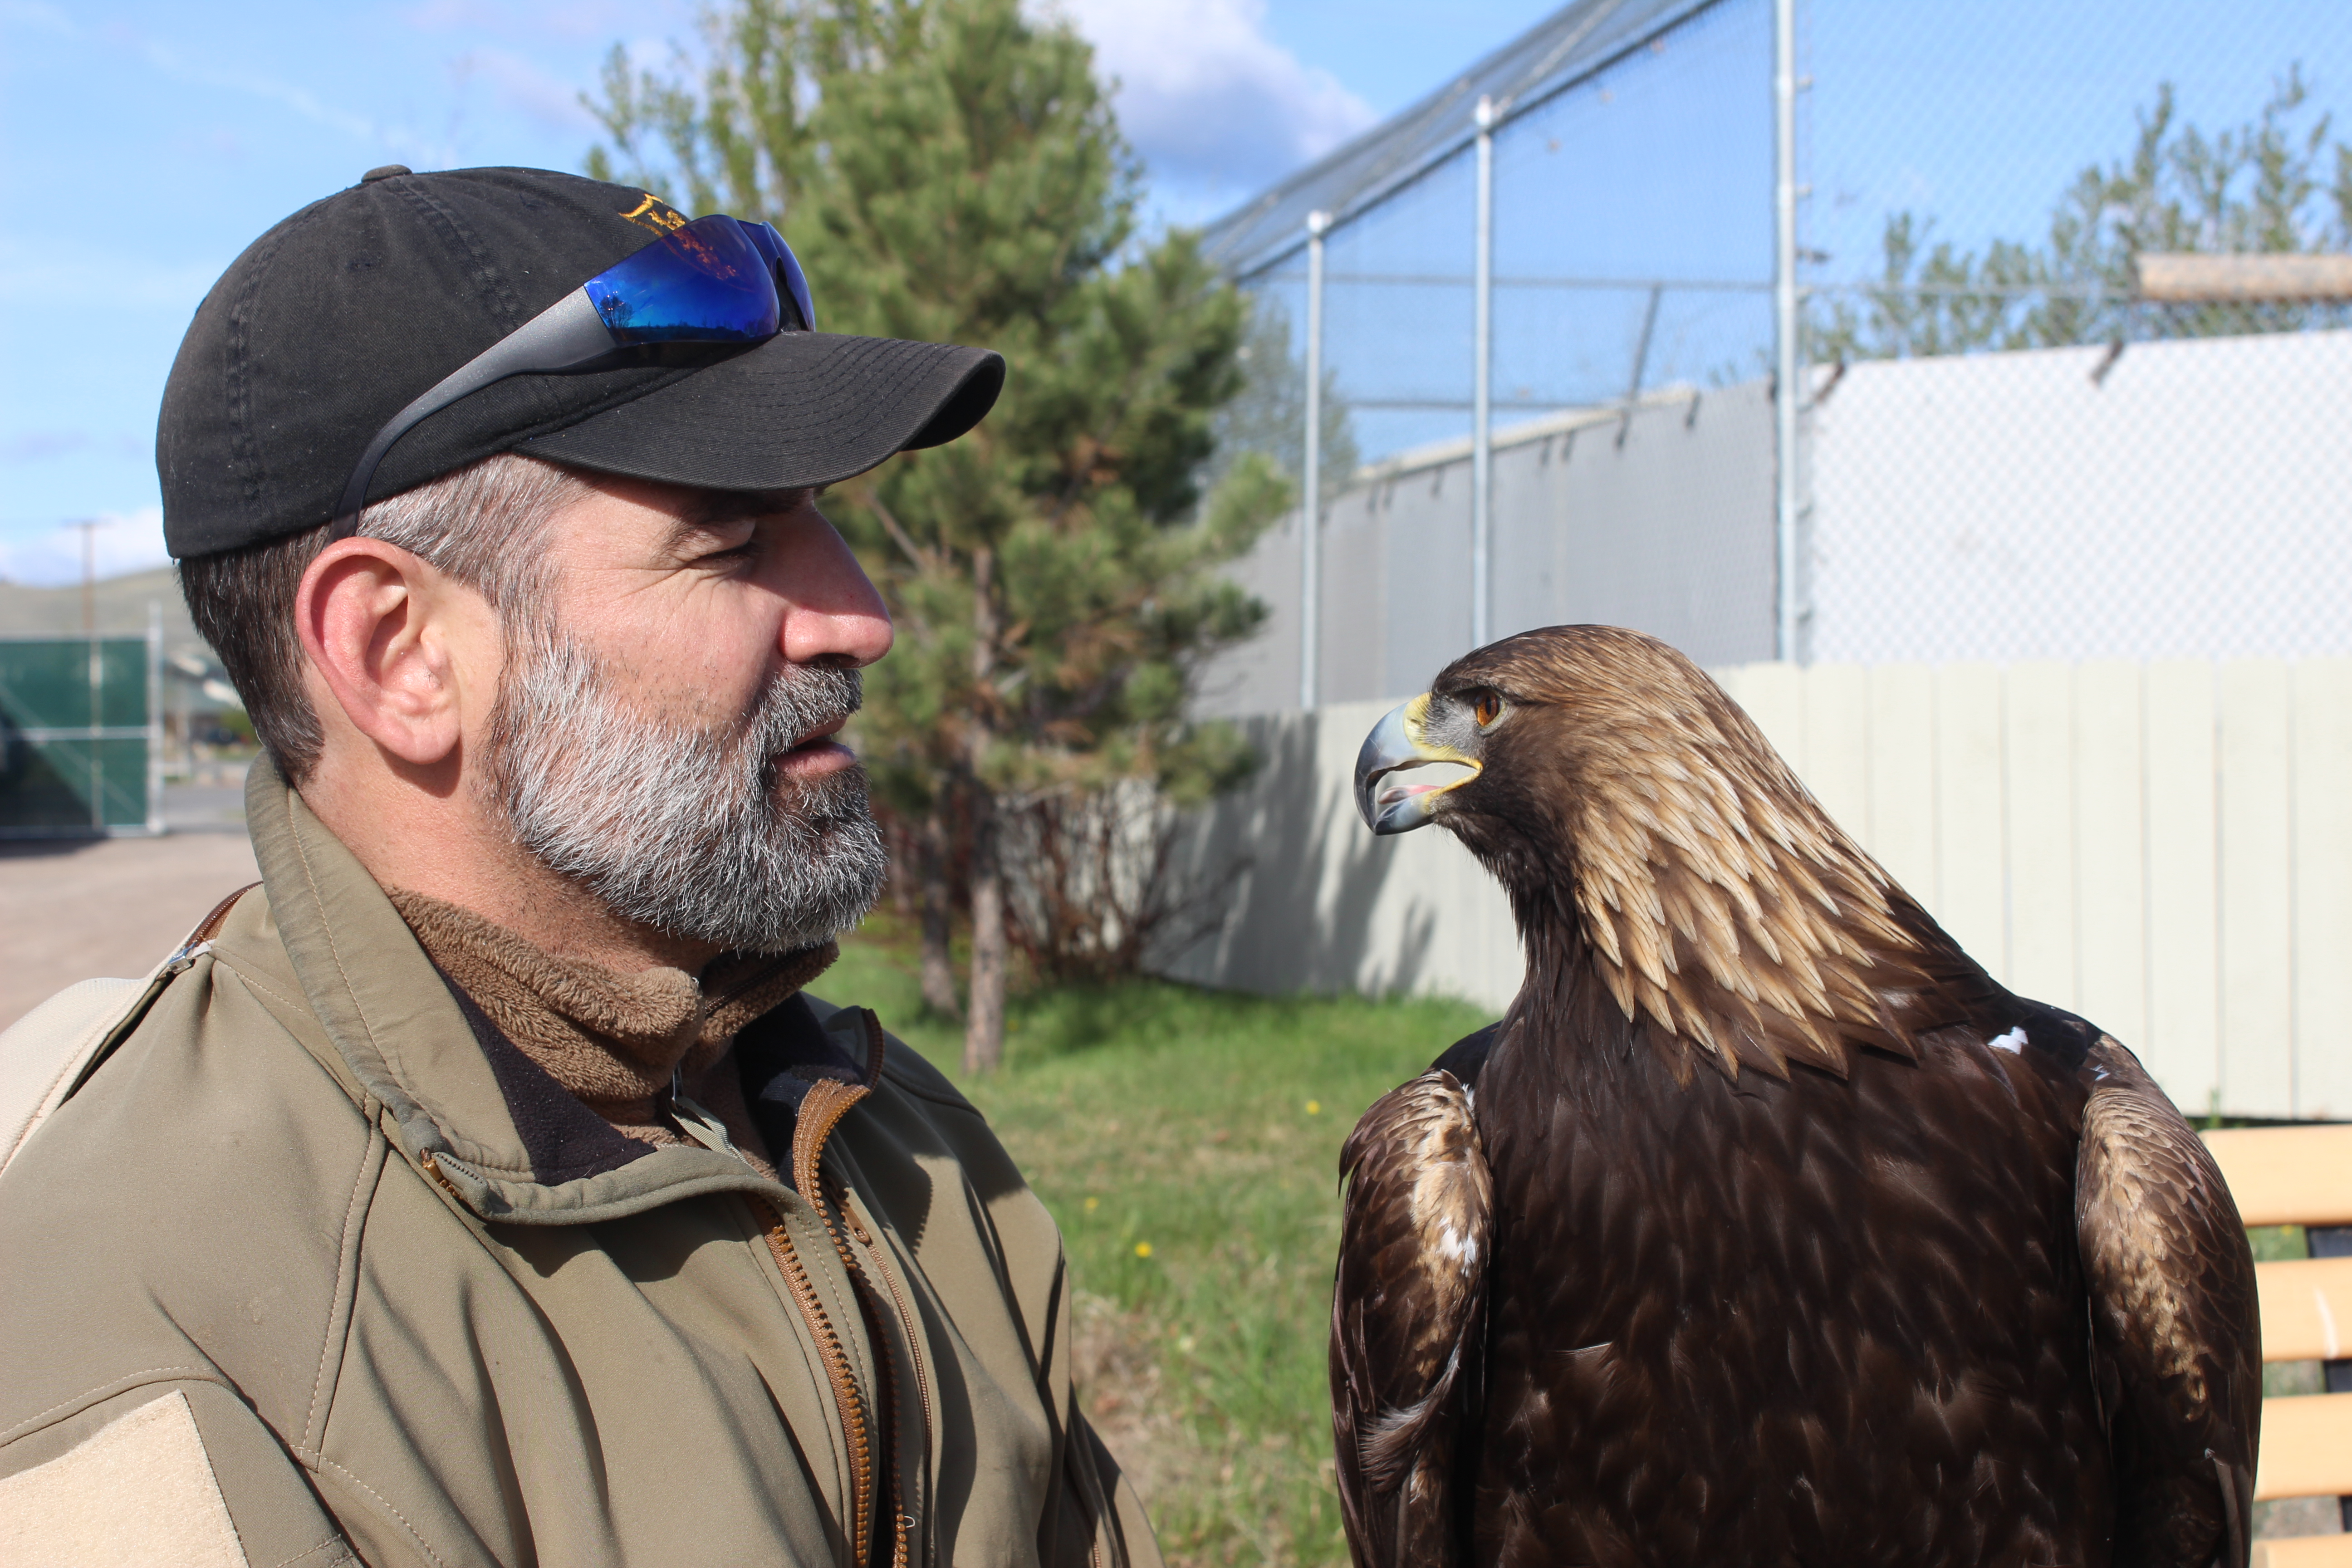 Caption: Scott Hannon with Eagle, Helena, MT, Credit: Clay Scott